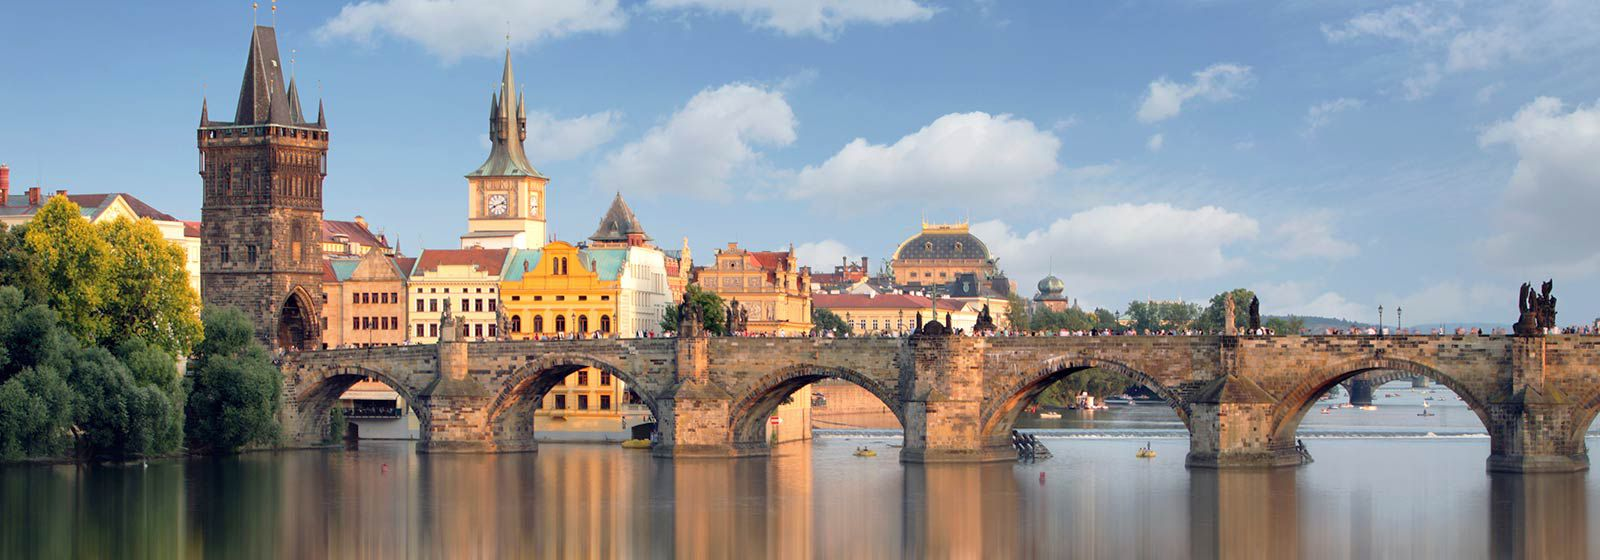 Hotels in prague best places to stay in prague czech for Best place to stay in prague